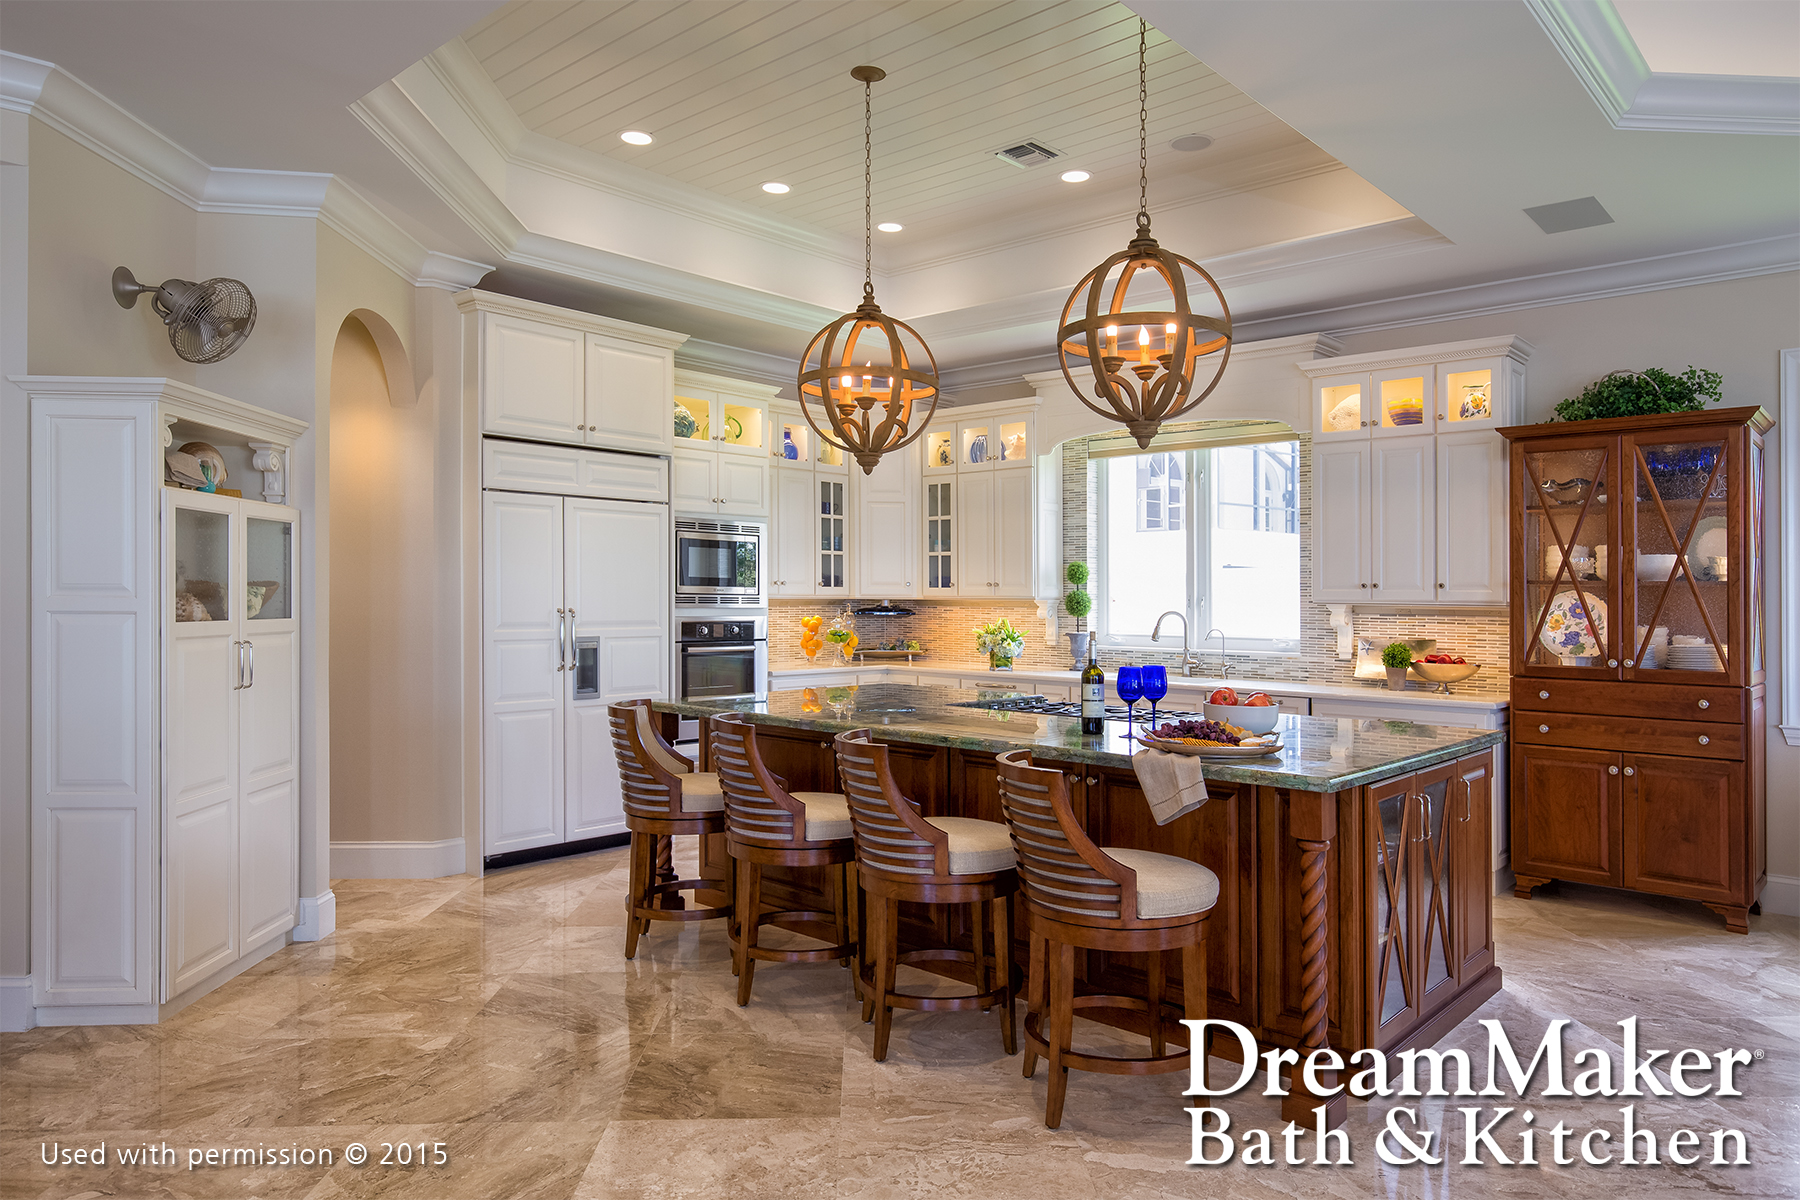 Nkba Kitchen Trends Remodeling Tips Dreammaker Bath Kitchen Of Winston Salem Nc